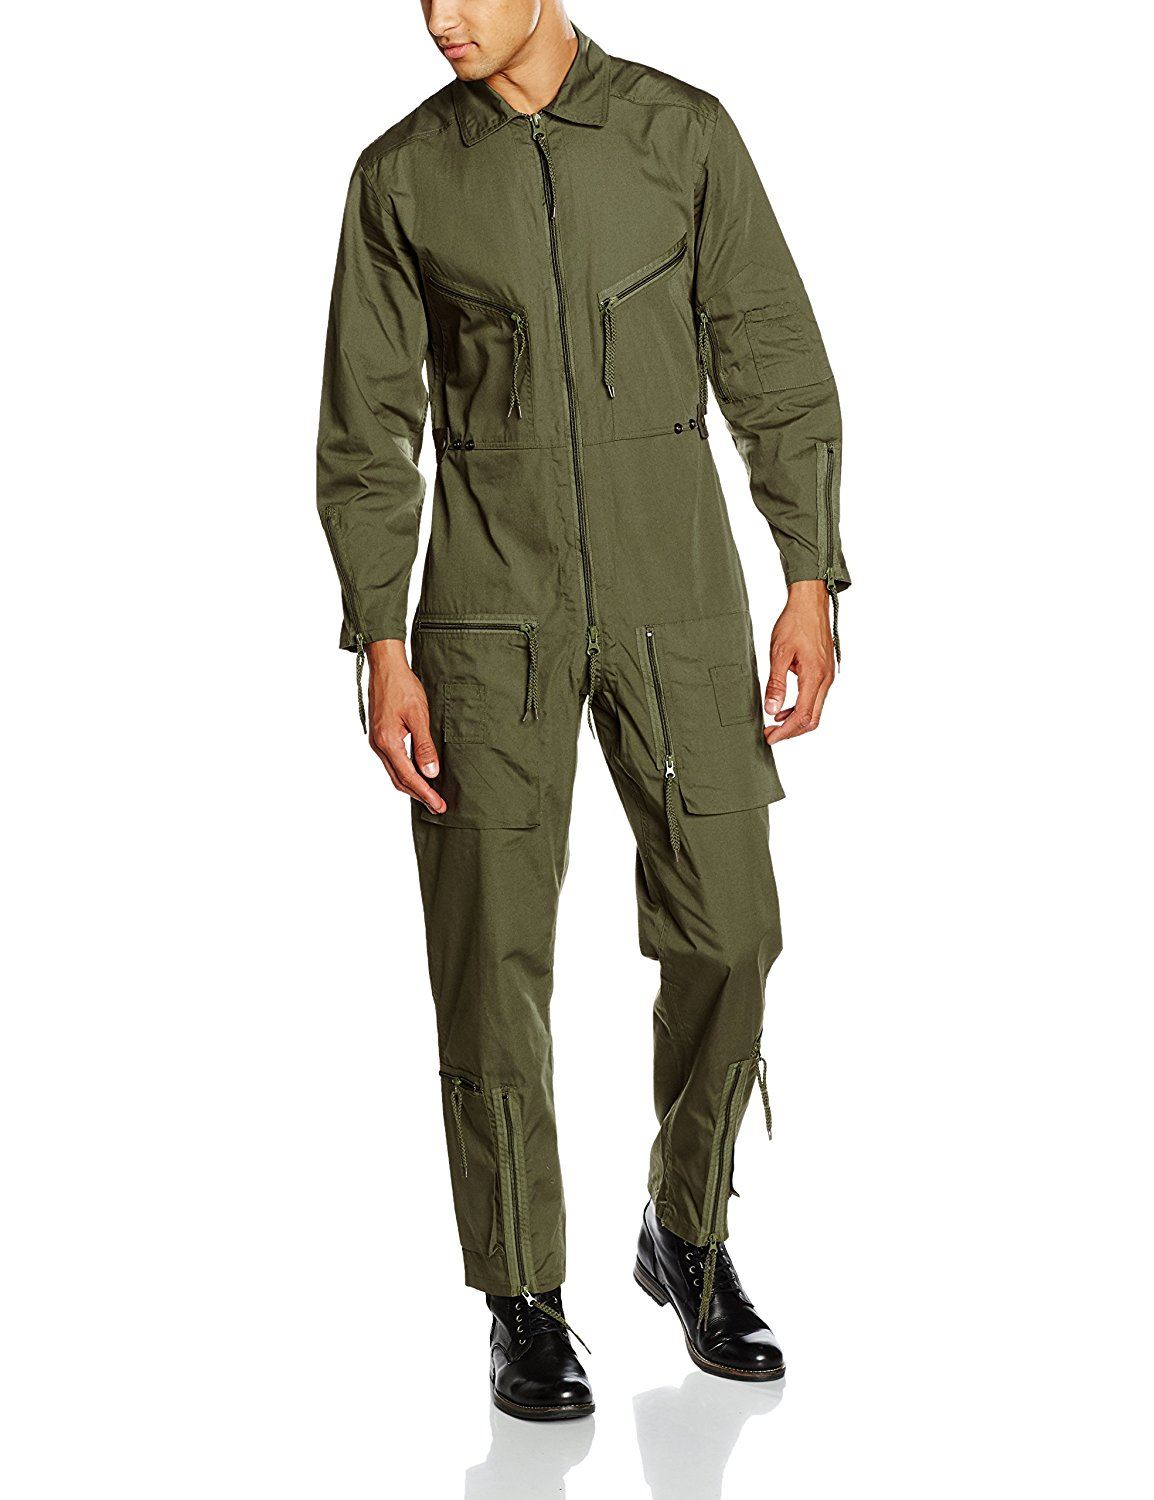 MIL-TEC PILOTS FLIGHT SUIT AVIATORS FLYING COVERALL RAF MILITARY BOILERSUIT